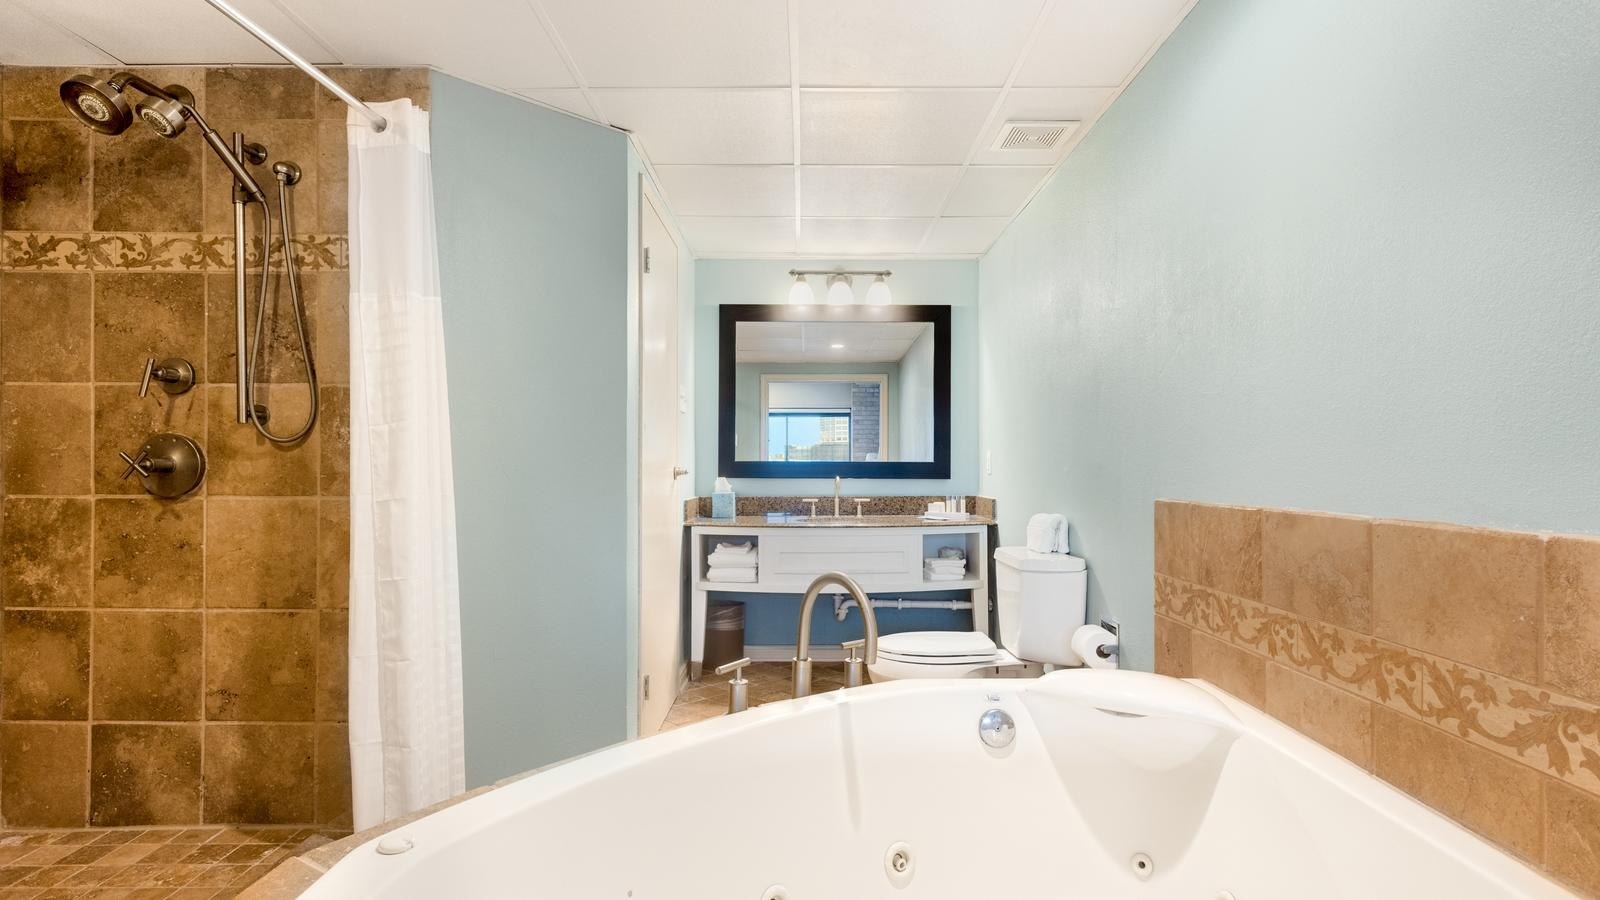 Jacuzzi tub and walk in shower